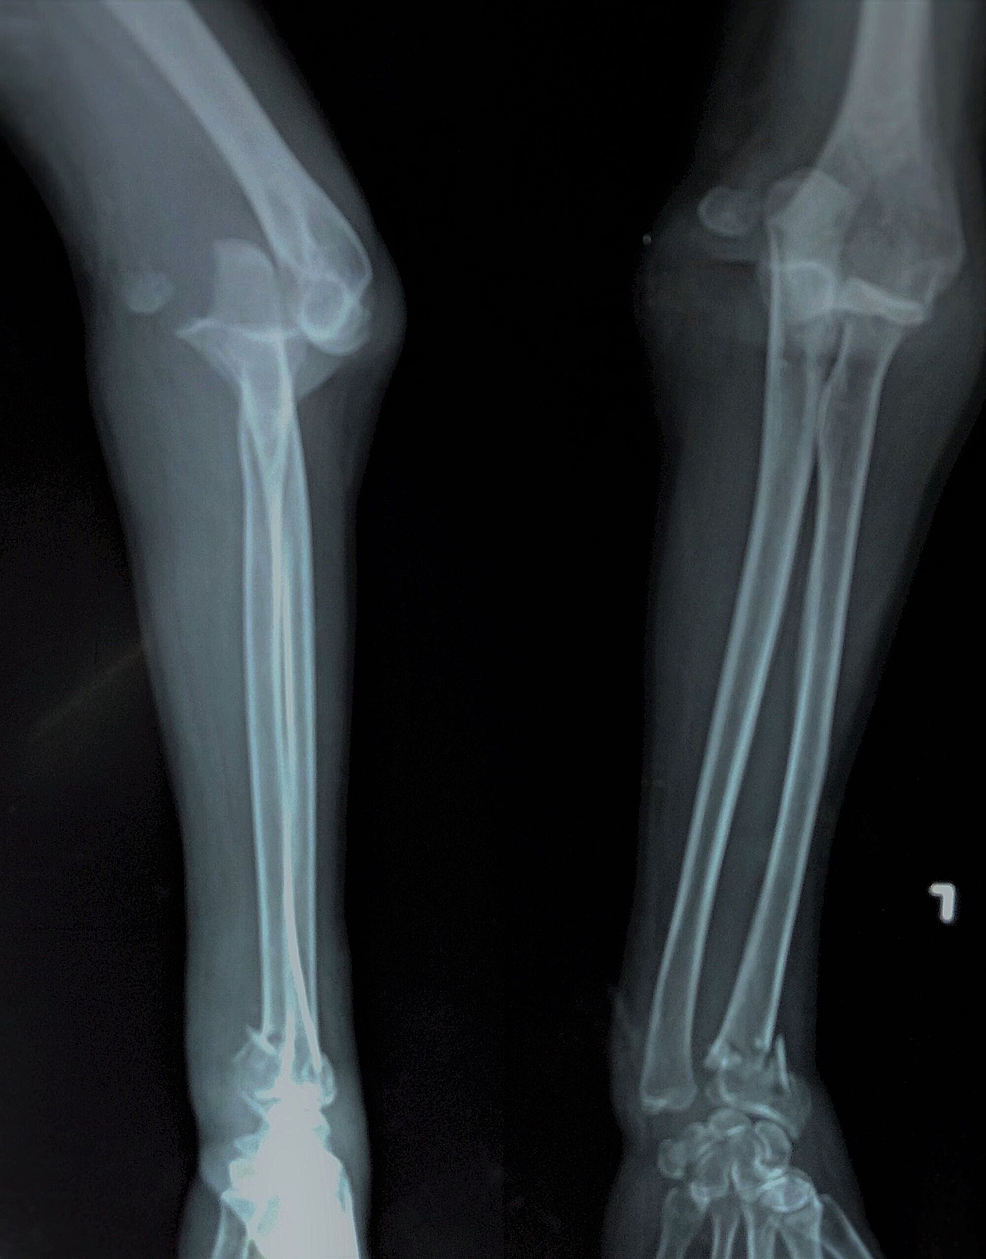 Anterior-elbow-dislocation-along-with-the-lateral-epicondyle-fracture.